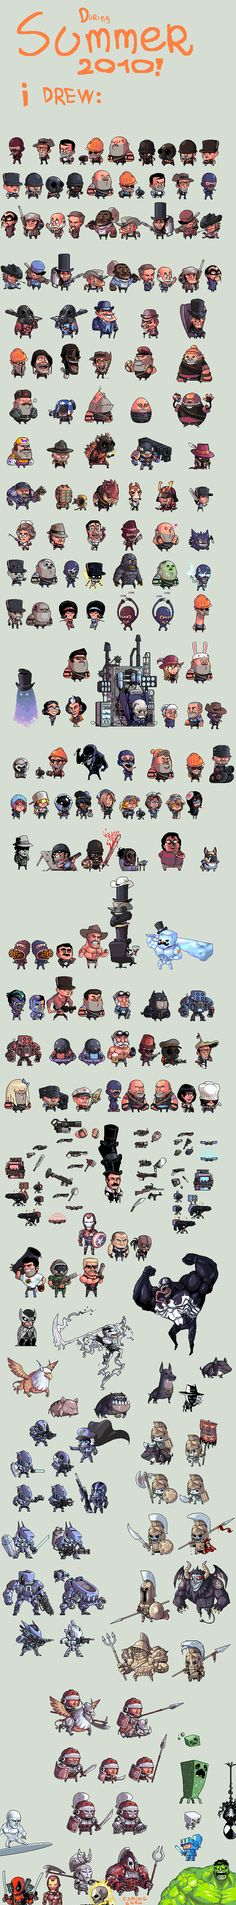 Productive Summer pixel art by Shwig - Team Fortress 2, Mass Effect, Venom, Minecraft, Avengers...